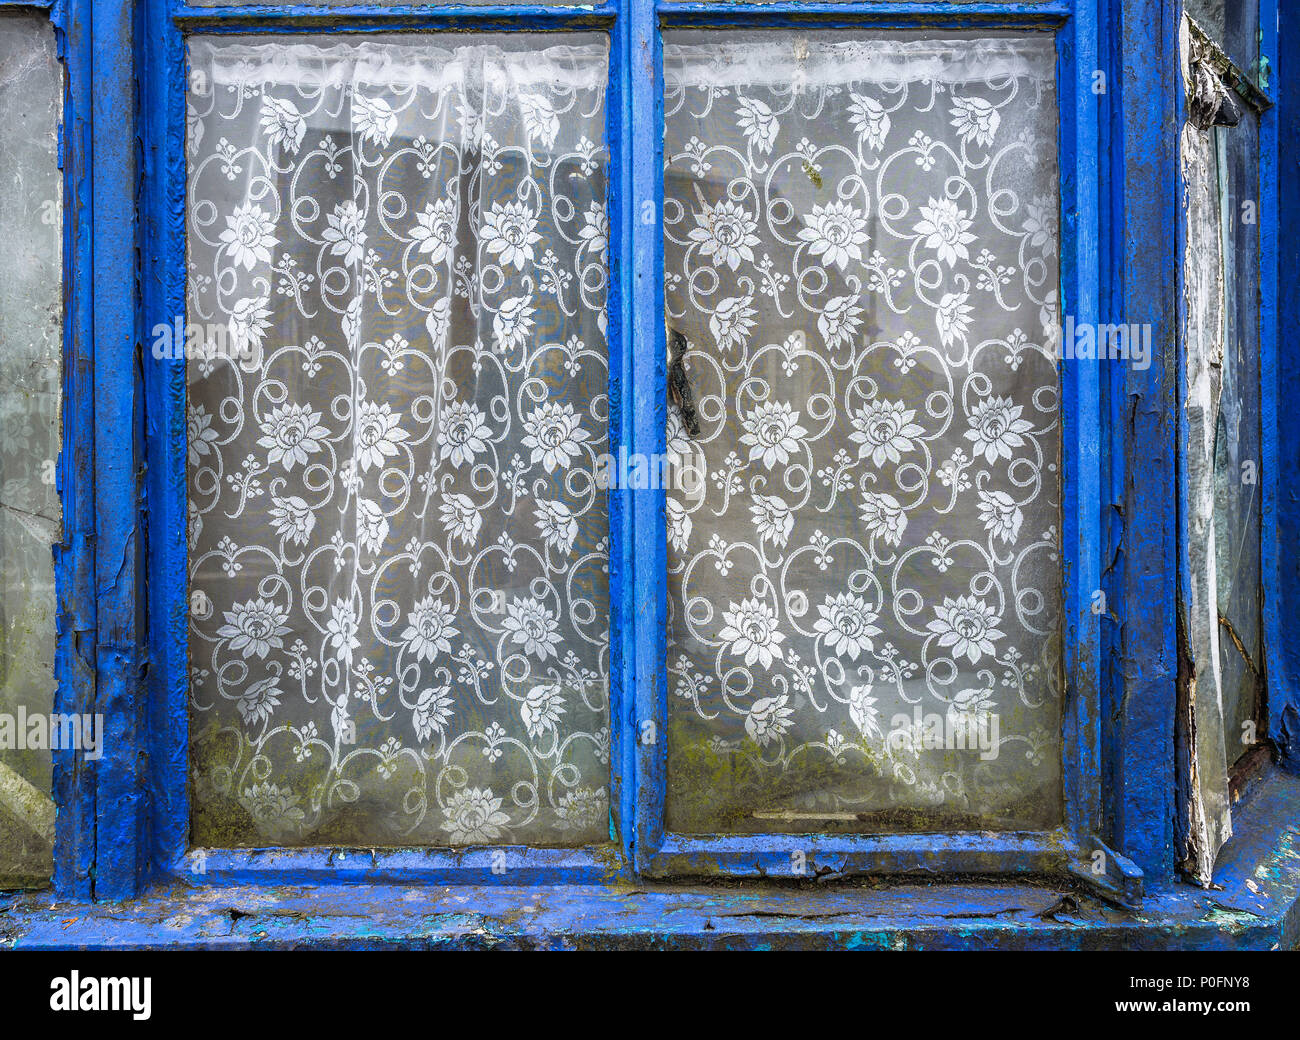 Old abandoned house with weathered window frames and net curtains. - Stock Image